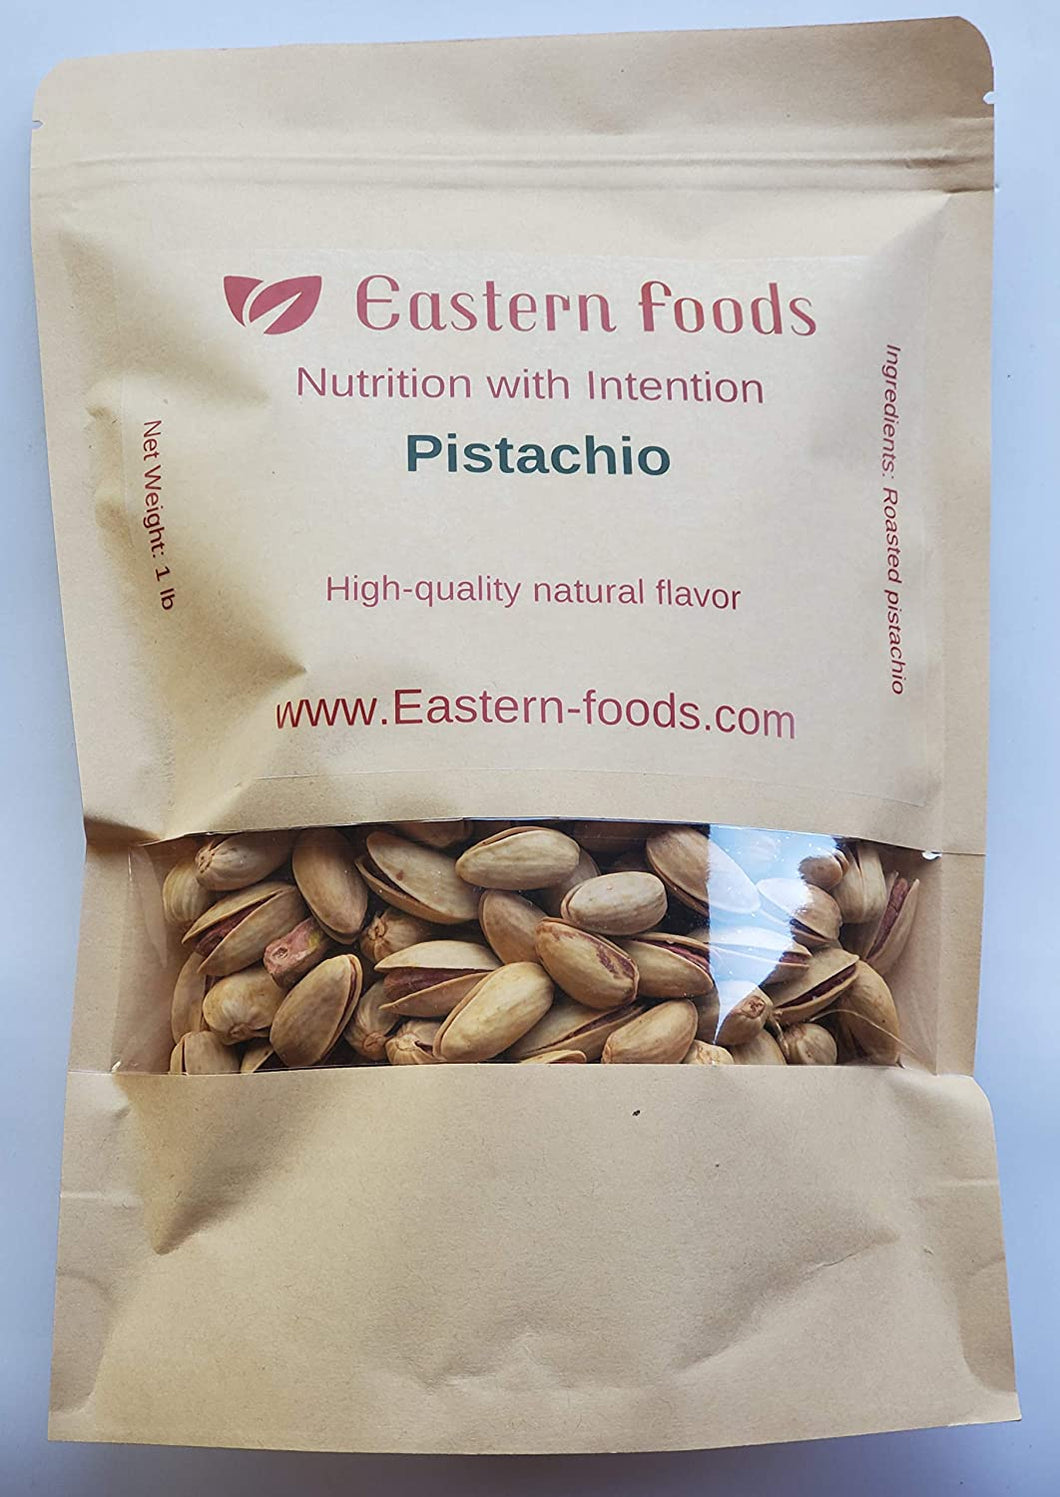 Eastern Foods Pistachio Roasted, 1 lb - High Quality Roasted Pistachio